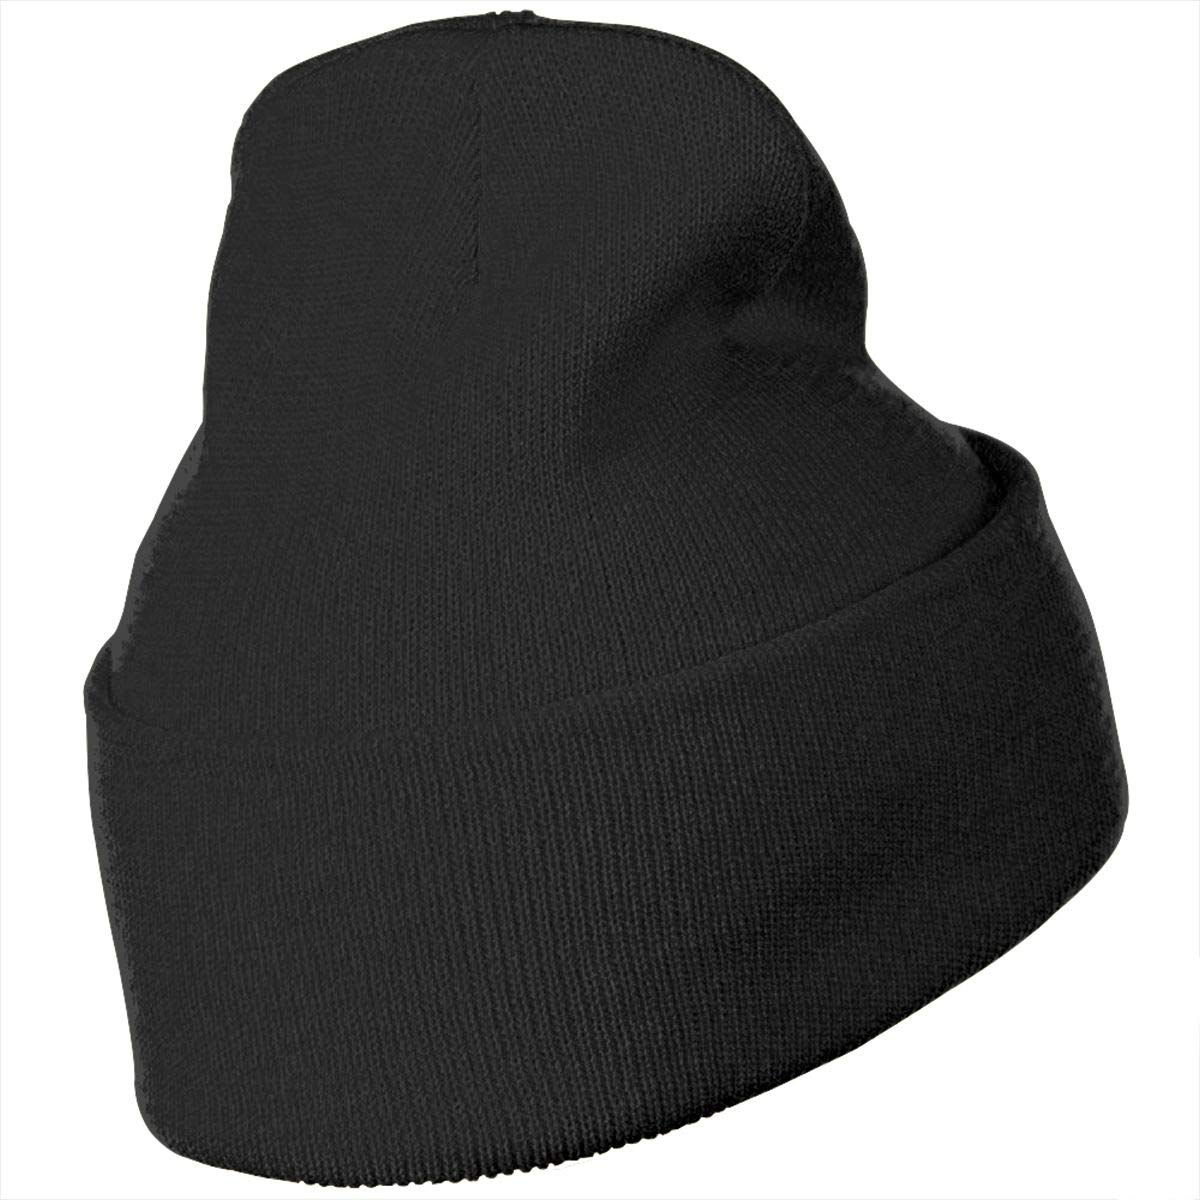 PCaag7v Peacock-Feather-with-Flat Beanie Hat Winter Solid Warm Knit Unisex Ski Skull Cap